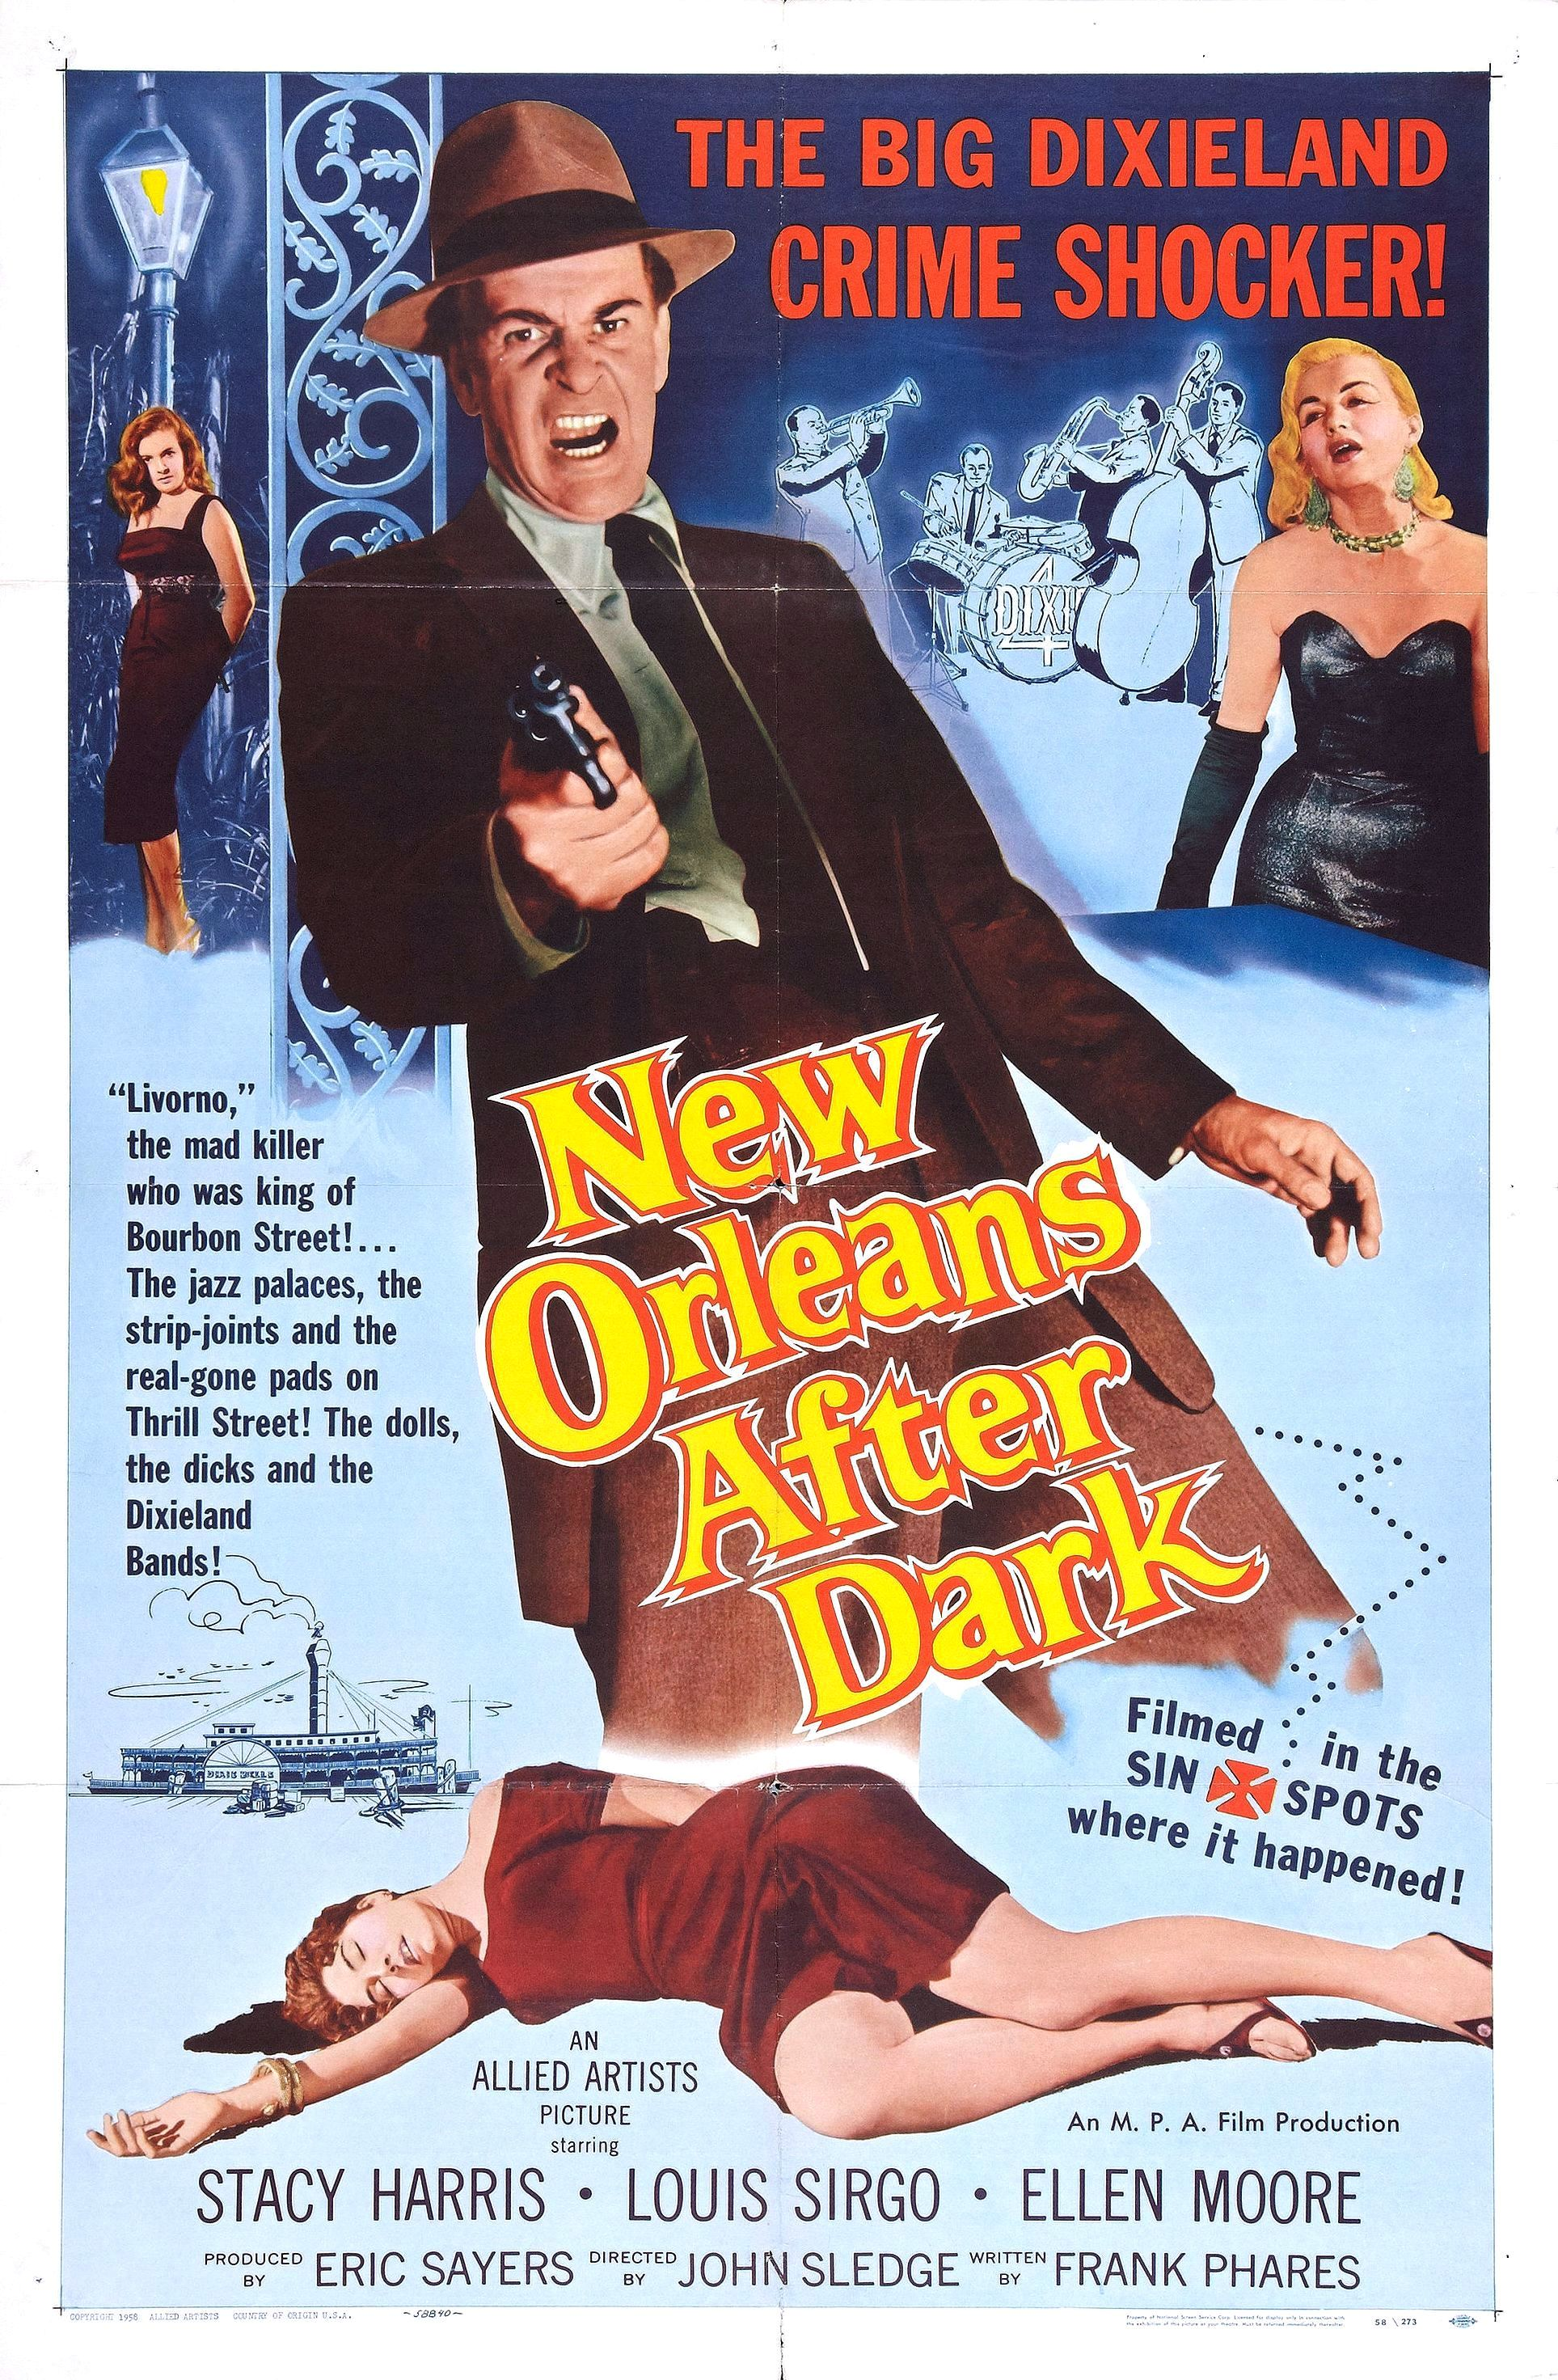 New Orleans After Dark (1958)